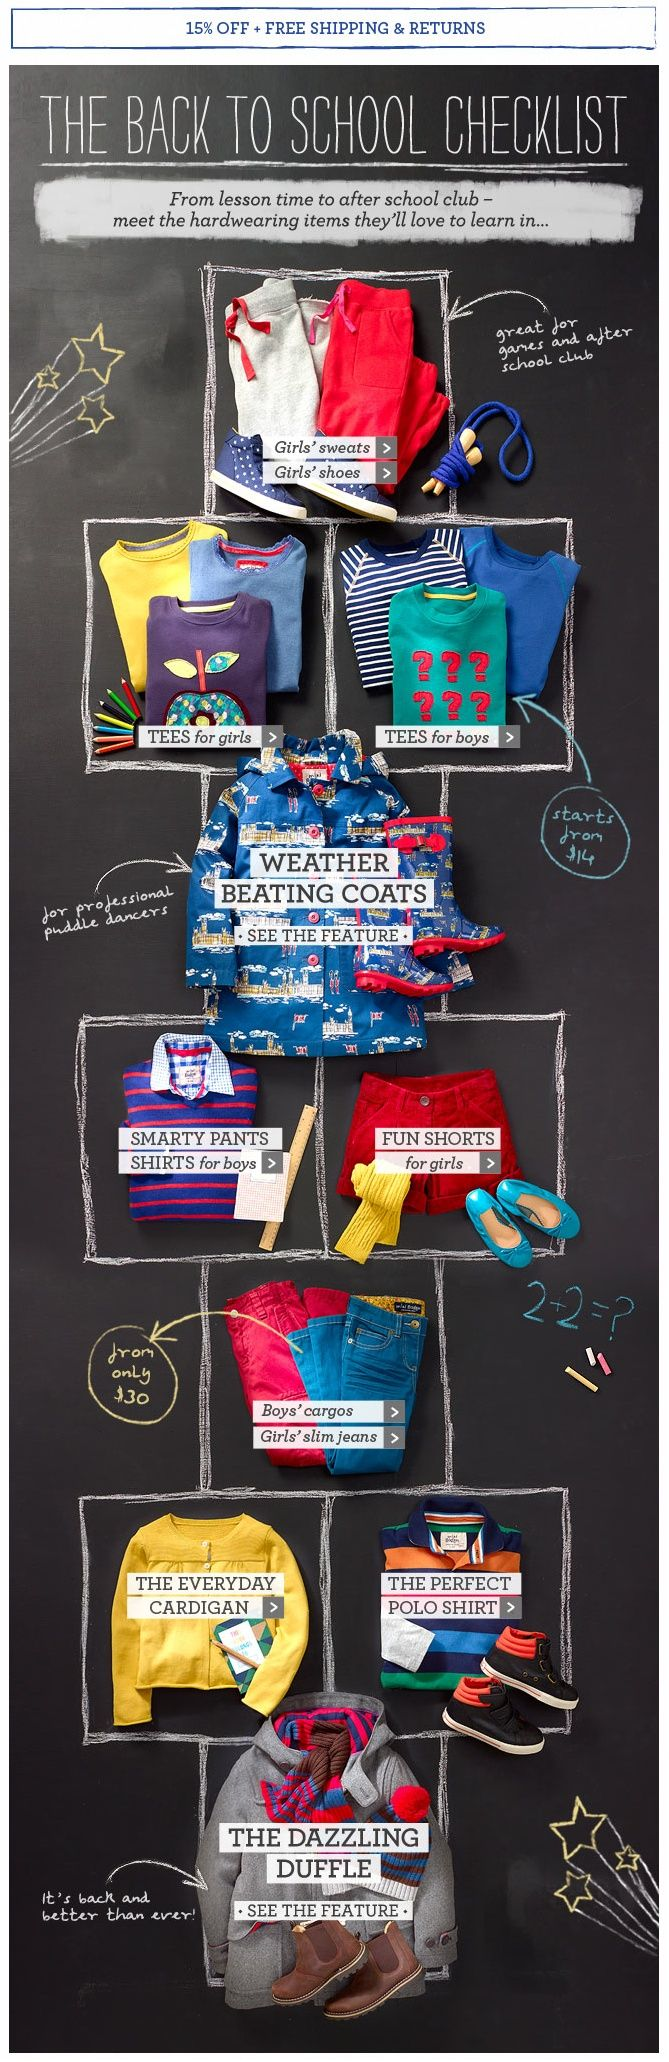 The chalk board concept of design has worked for this extremely vibrant and colorful #emaildesign for kids merchandise.